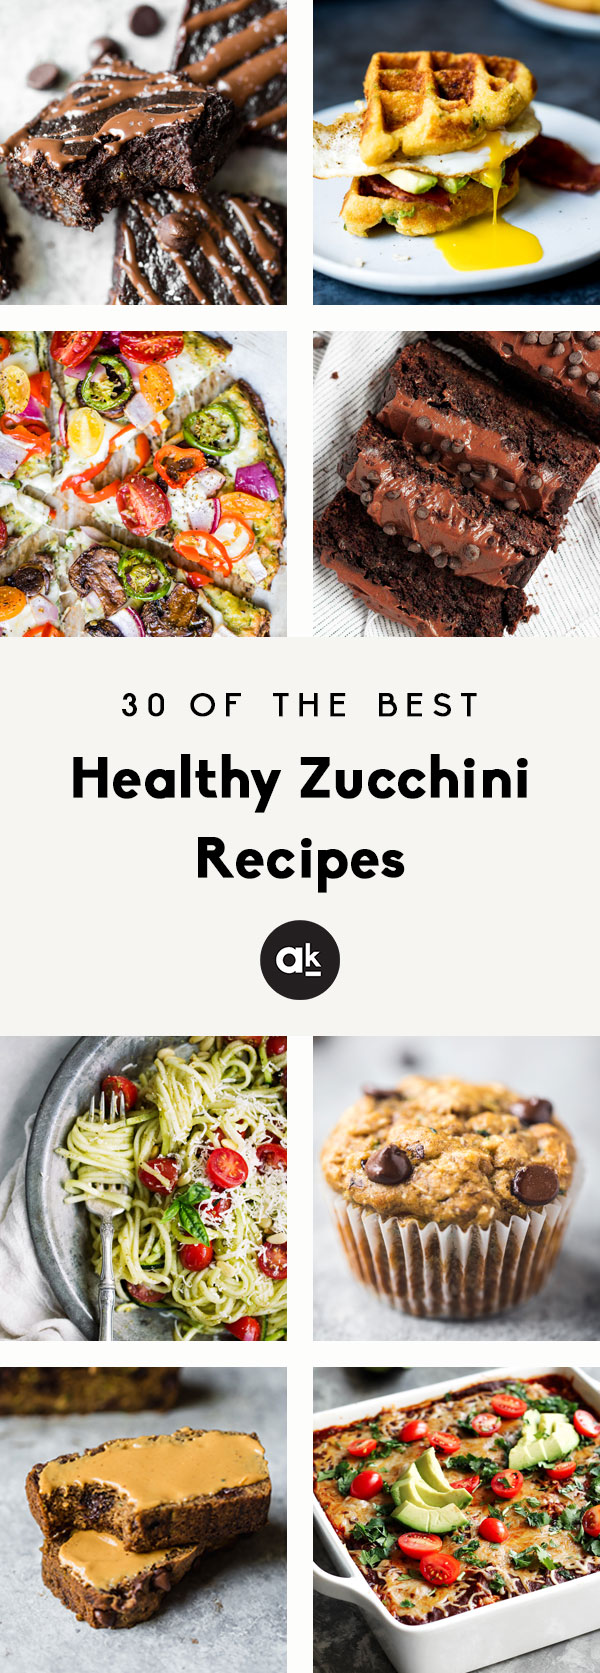 The best healthy zucchini recipes that are perfect for any meal of the day! From quick breads and brownies to delicious lasagna and meatballs, these easy, healthy zucchini recipes will be be your new favorites to make year-round.